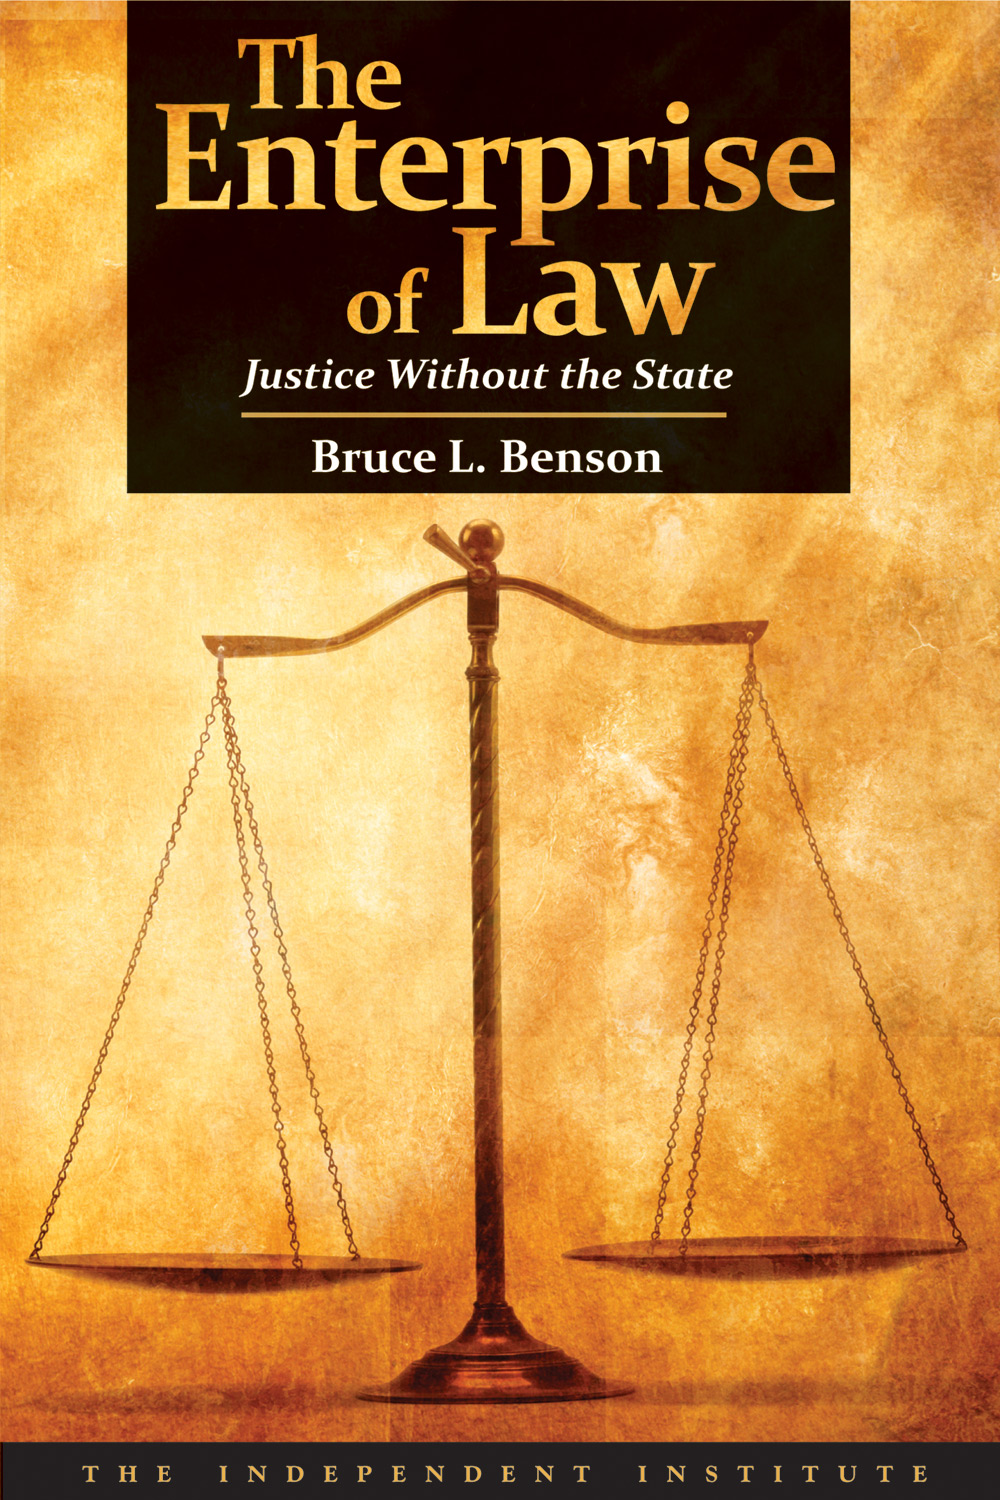 law and justice essay emerging scholarship conference poster logos  the enterprise of law justice out the state high resolution cover